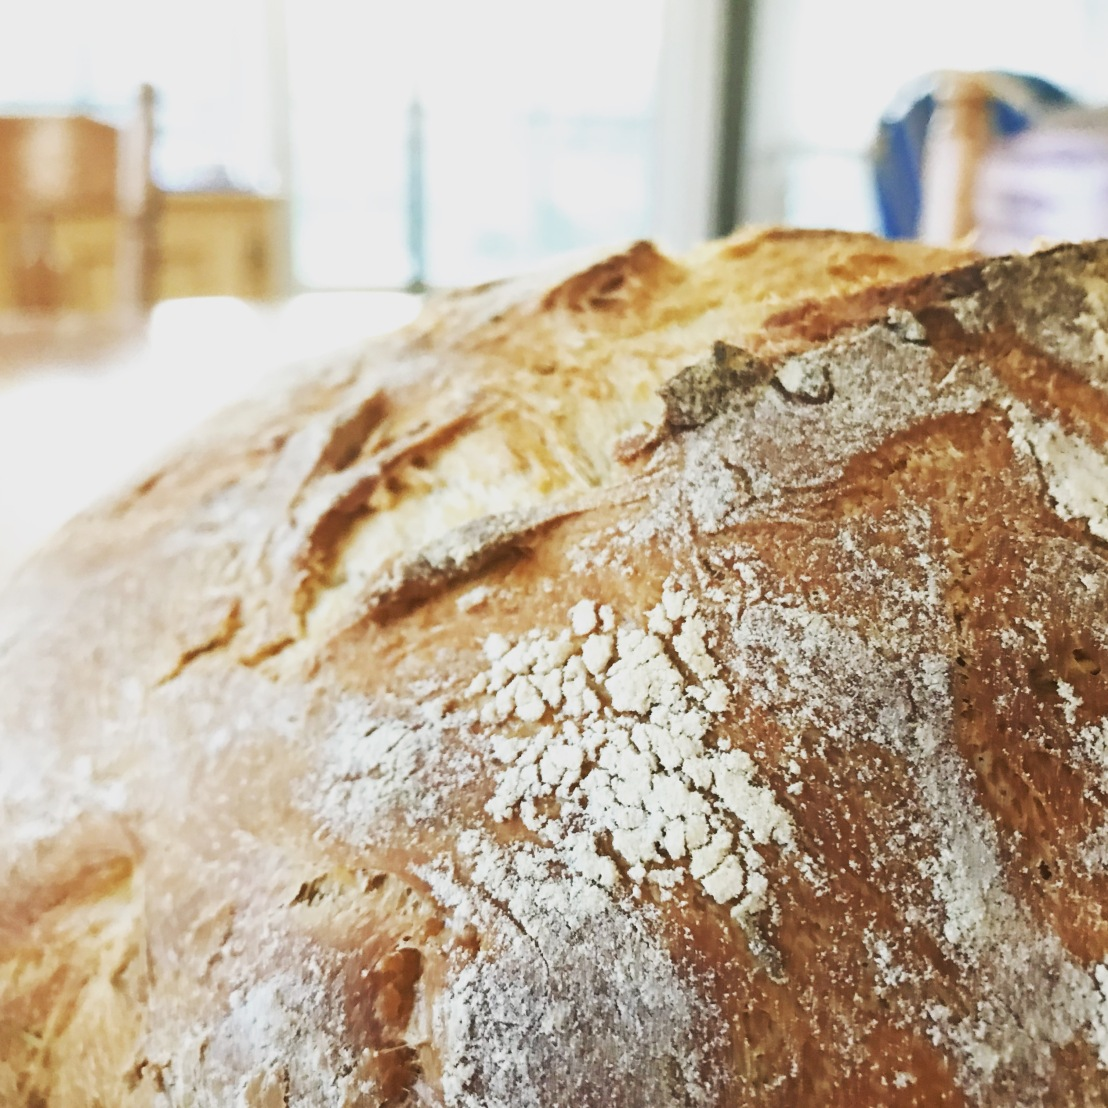 Adventures in Baking No. 56: Rosemary-Olive OilBoule